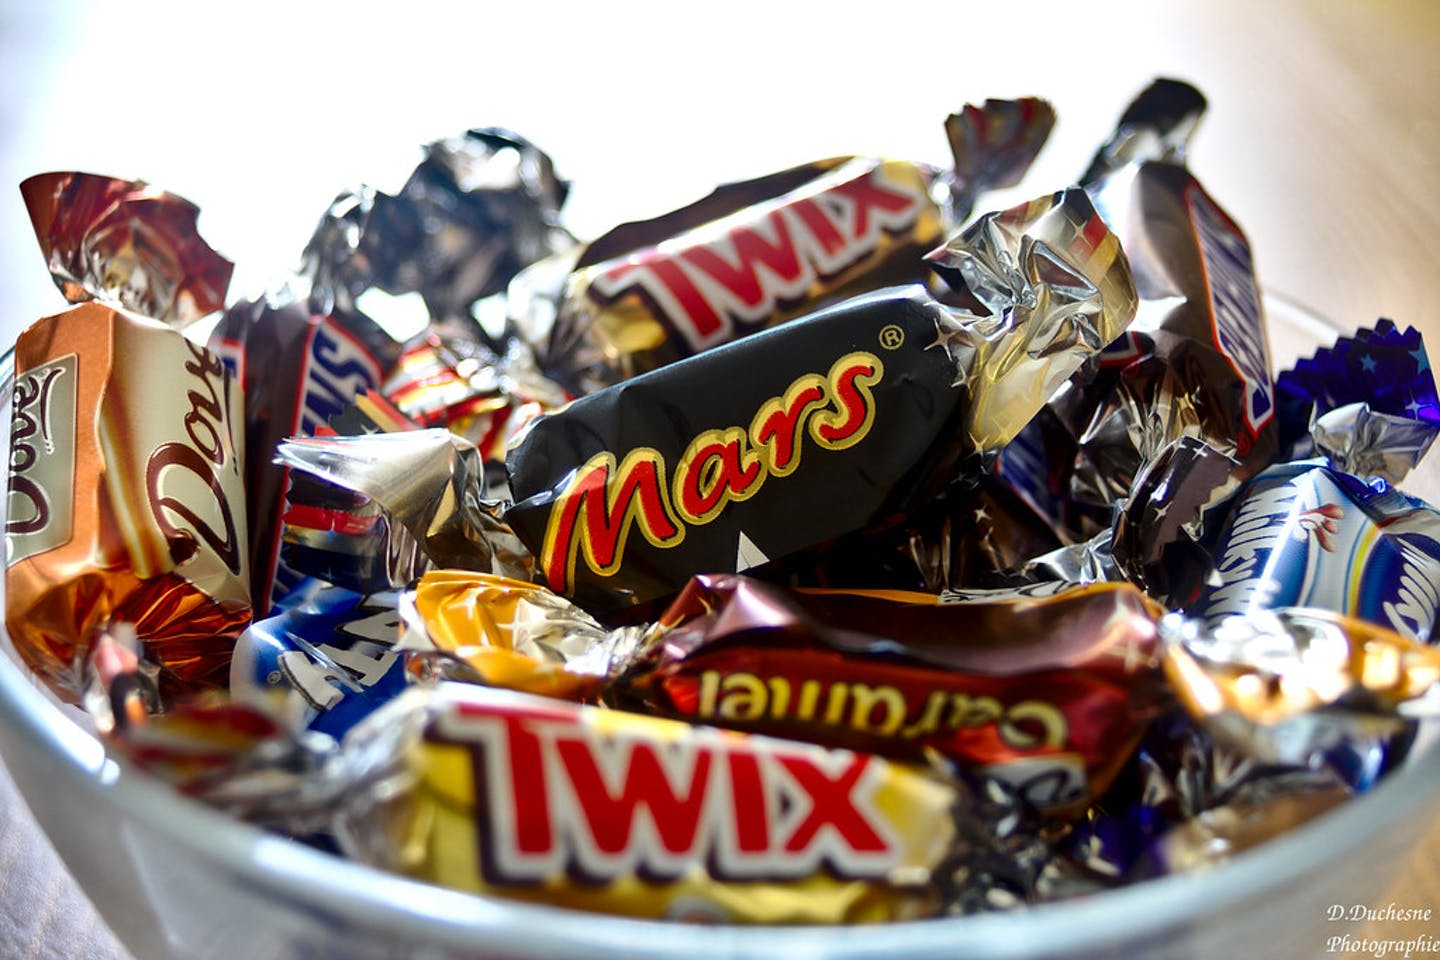 Different brands of Mars chocolate